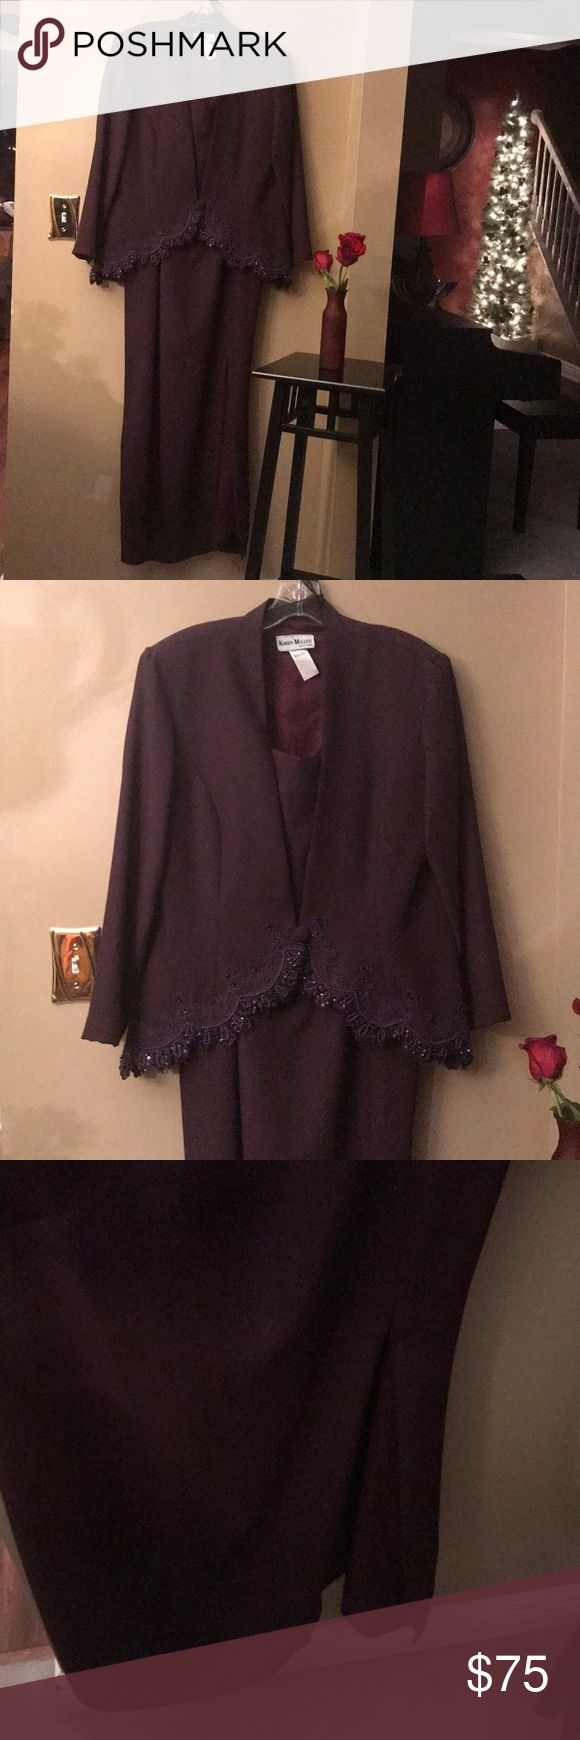 💖REDUCED💖 Karen Miller 2 Pc. Evening Gown Worn several years ago as a mother of the groom dress. It is in perfect condition. It is lined. No stains. No missing beads. Has been dry cleaned. Moving and getting rid of items. It's a gorgeous dark plum purple color. Make me an offer! 🎀😊 Karen Miller Dresses